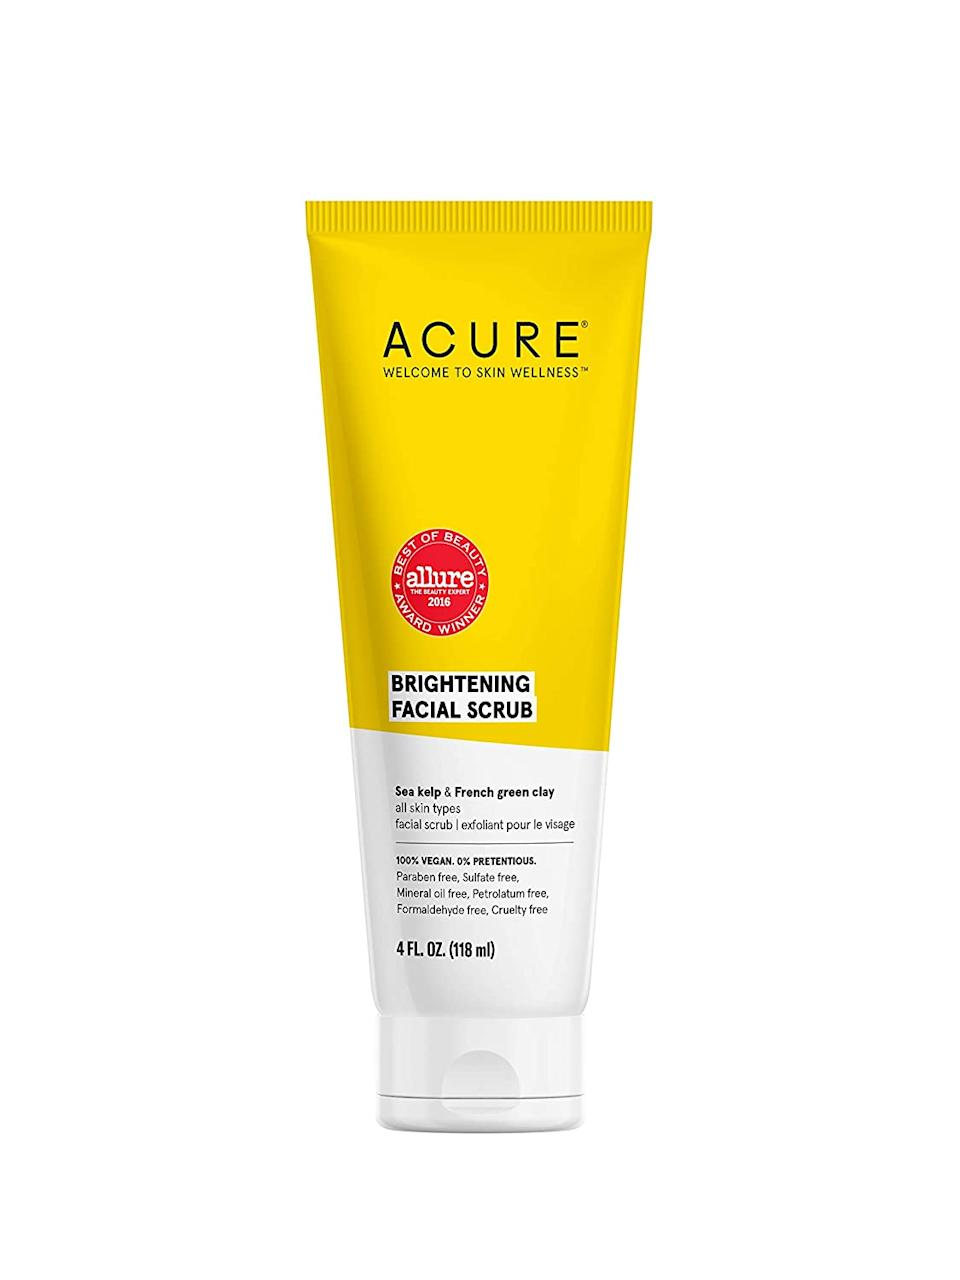 "<h3>Acure Brightening Facial Scrub<br></h3><br>This customer-favorite natural brightening scrub just advanced 18% in the Beauty category — likely bolstered by it's 8,000+ positive reviews. With sea kelp and French green clay, it has some serious detoxifying power that we could all use right about now.<br><br><em>*August 2020 Mover and Shaker</em><br><br><strong>Acure</strong> Brightening Facial Scrub, $, available at <a href=""https://www.amazon.com/ACURE-Brilliantly-Brightening-Facial-Packaging/dp/B003Z4OD24/ref=zg_bsms_beauty_64"" rel=""nofollow noopener"" target=""_blank"" data-ylk=""slk:Amazon"" class=""link rapid-noclick-resp"">Amazon</a>"